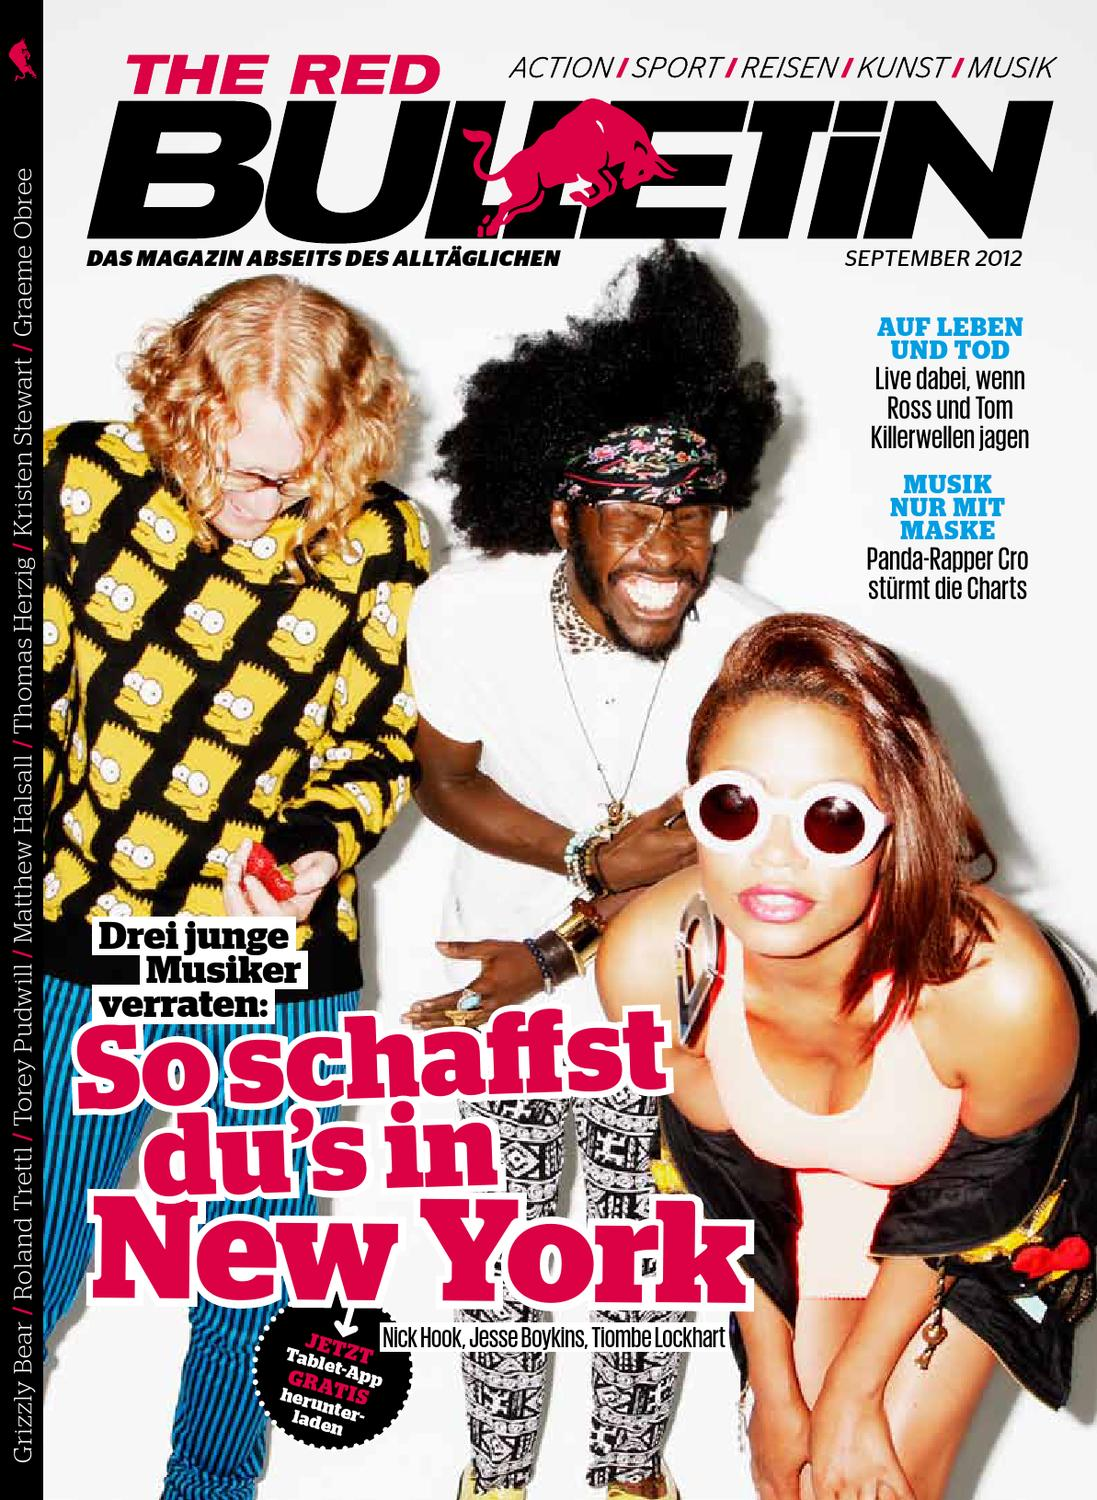 The Red Bulletin_1209_DE by Red Bull Media House - issuu